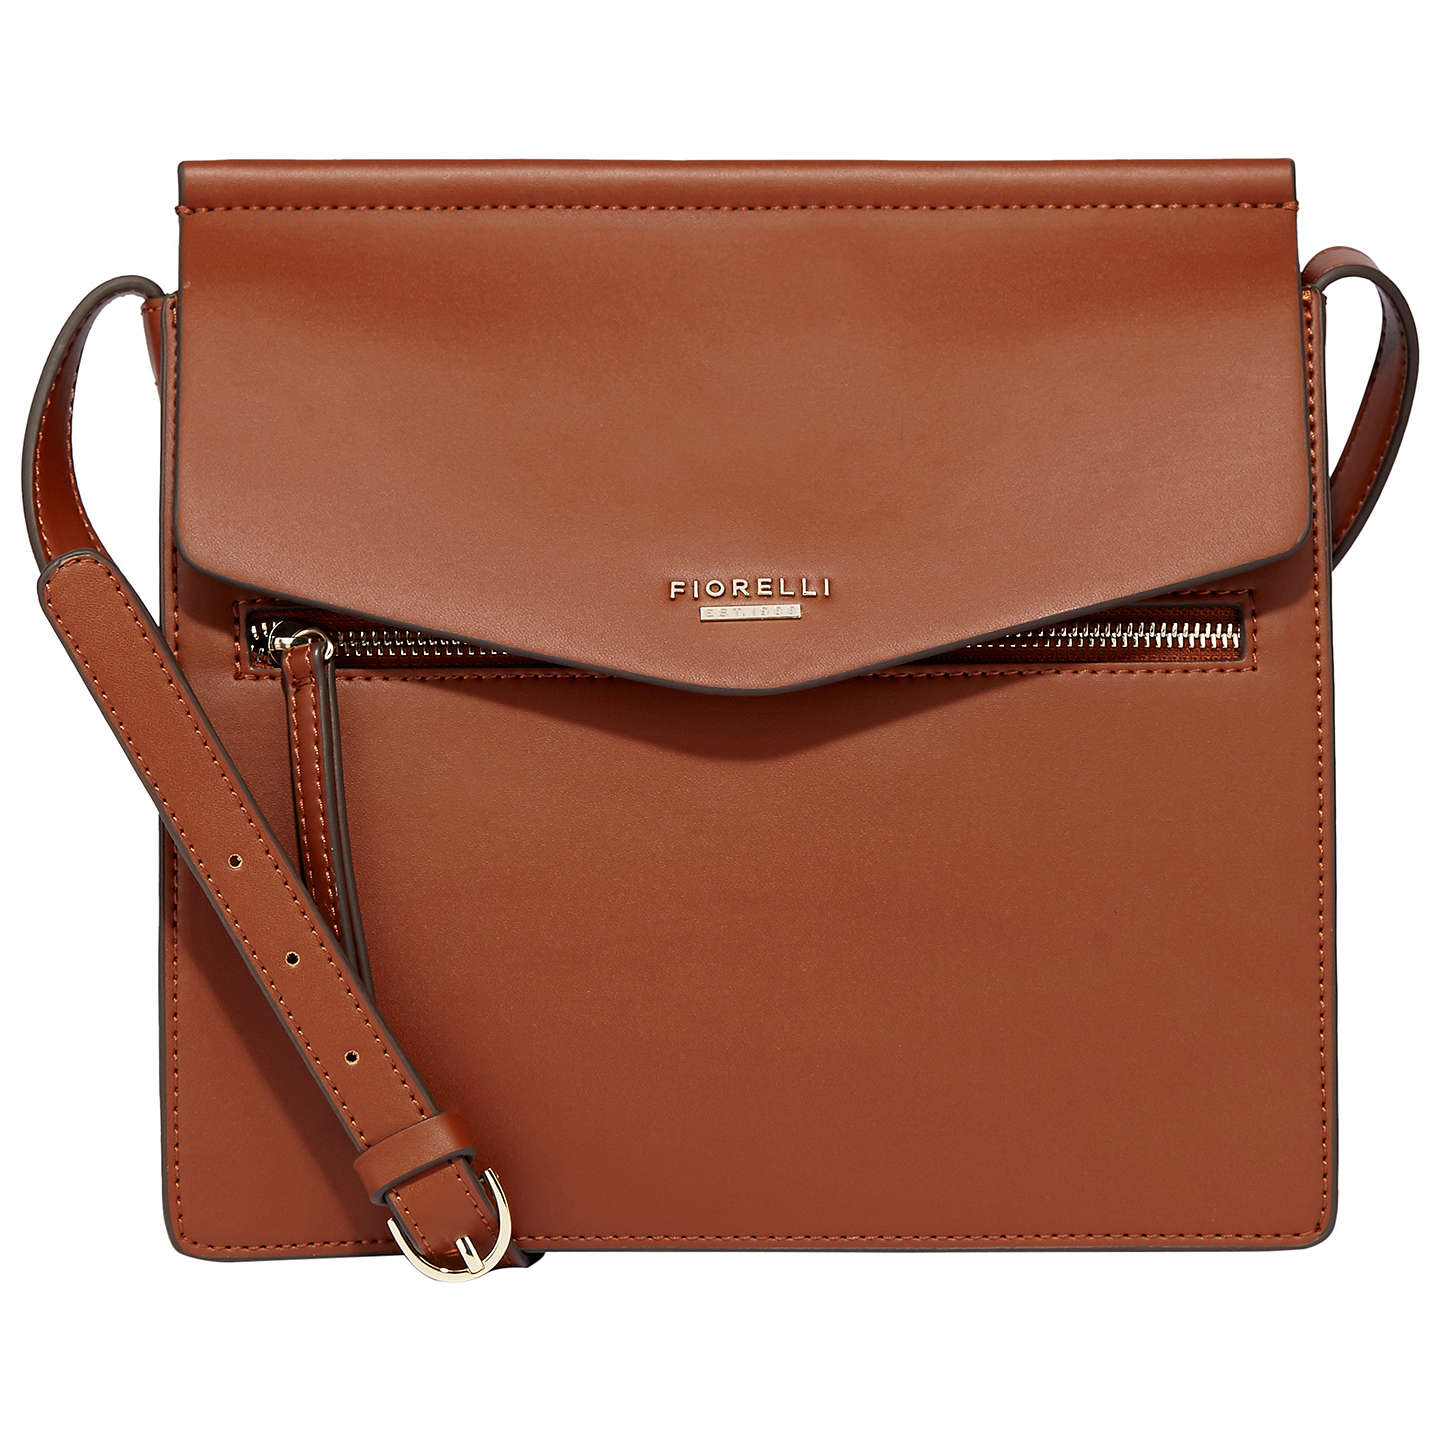 Womens Mia Cross-Body Bag Fiorelli J84iLm